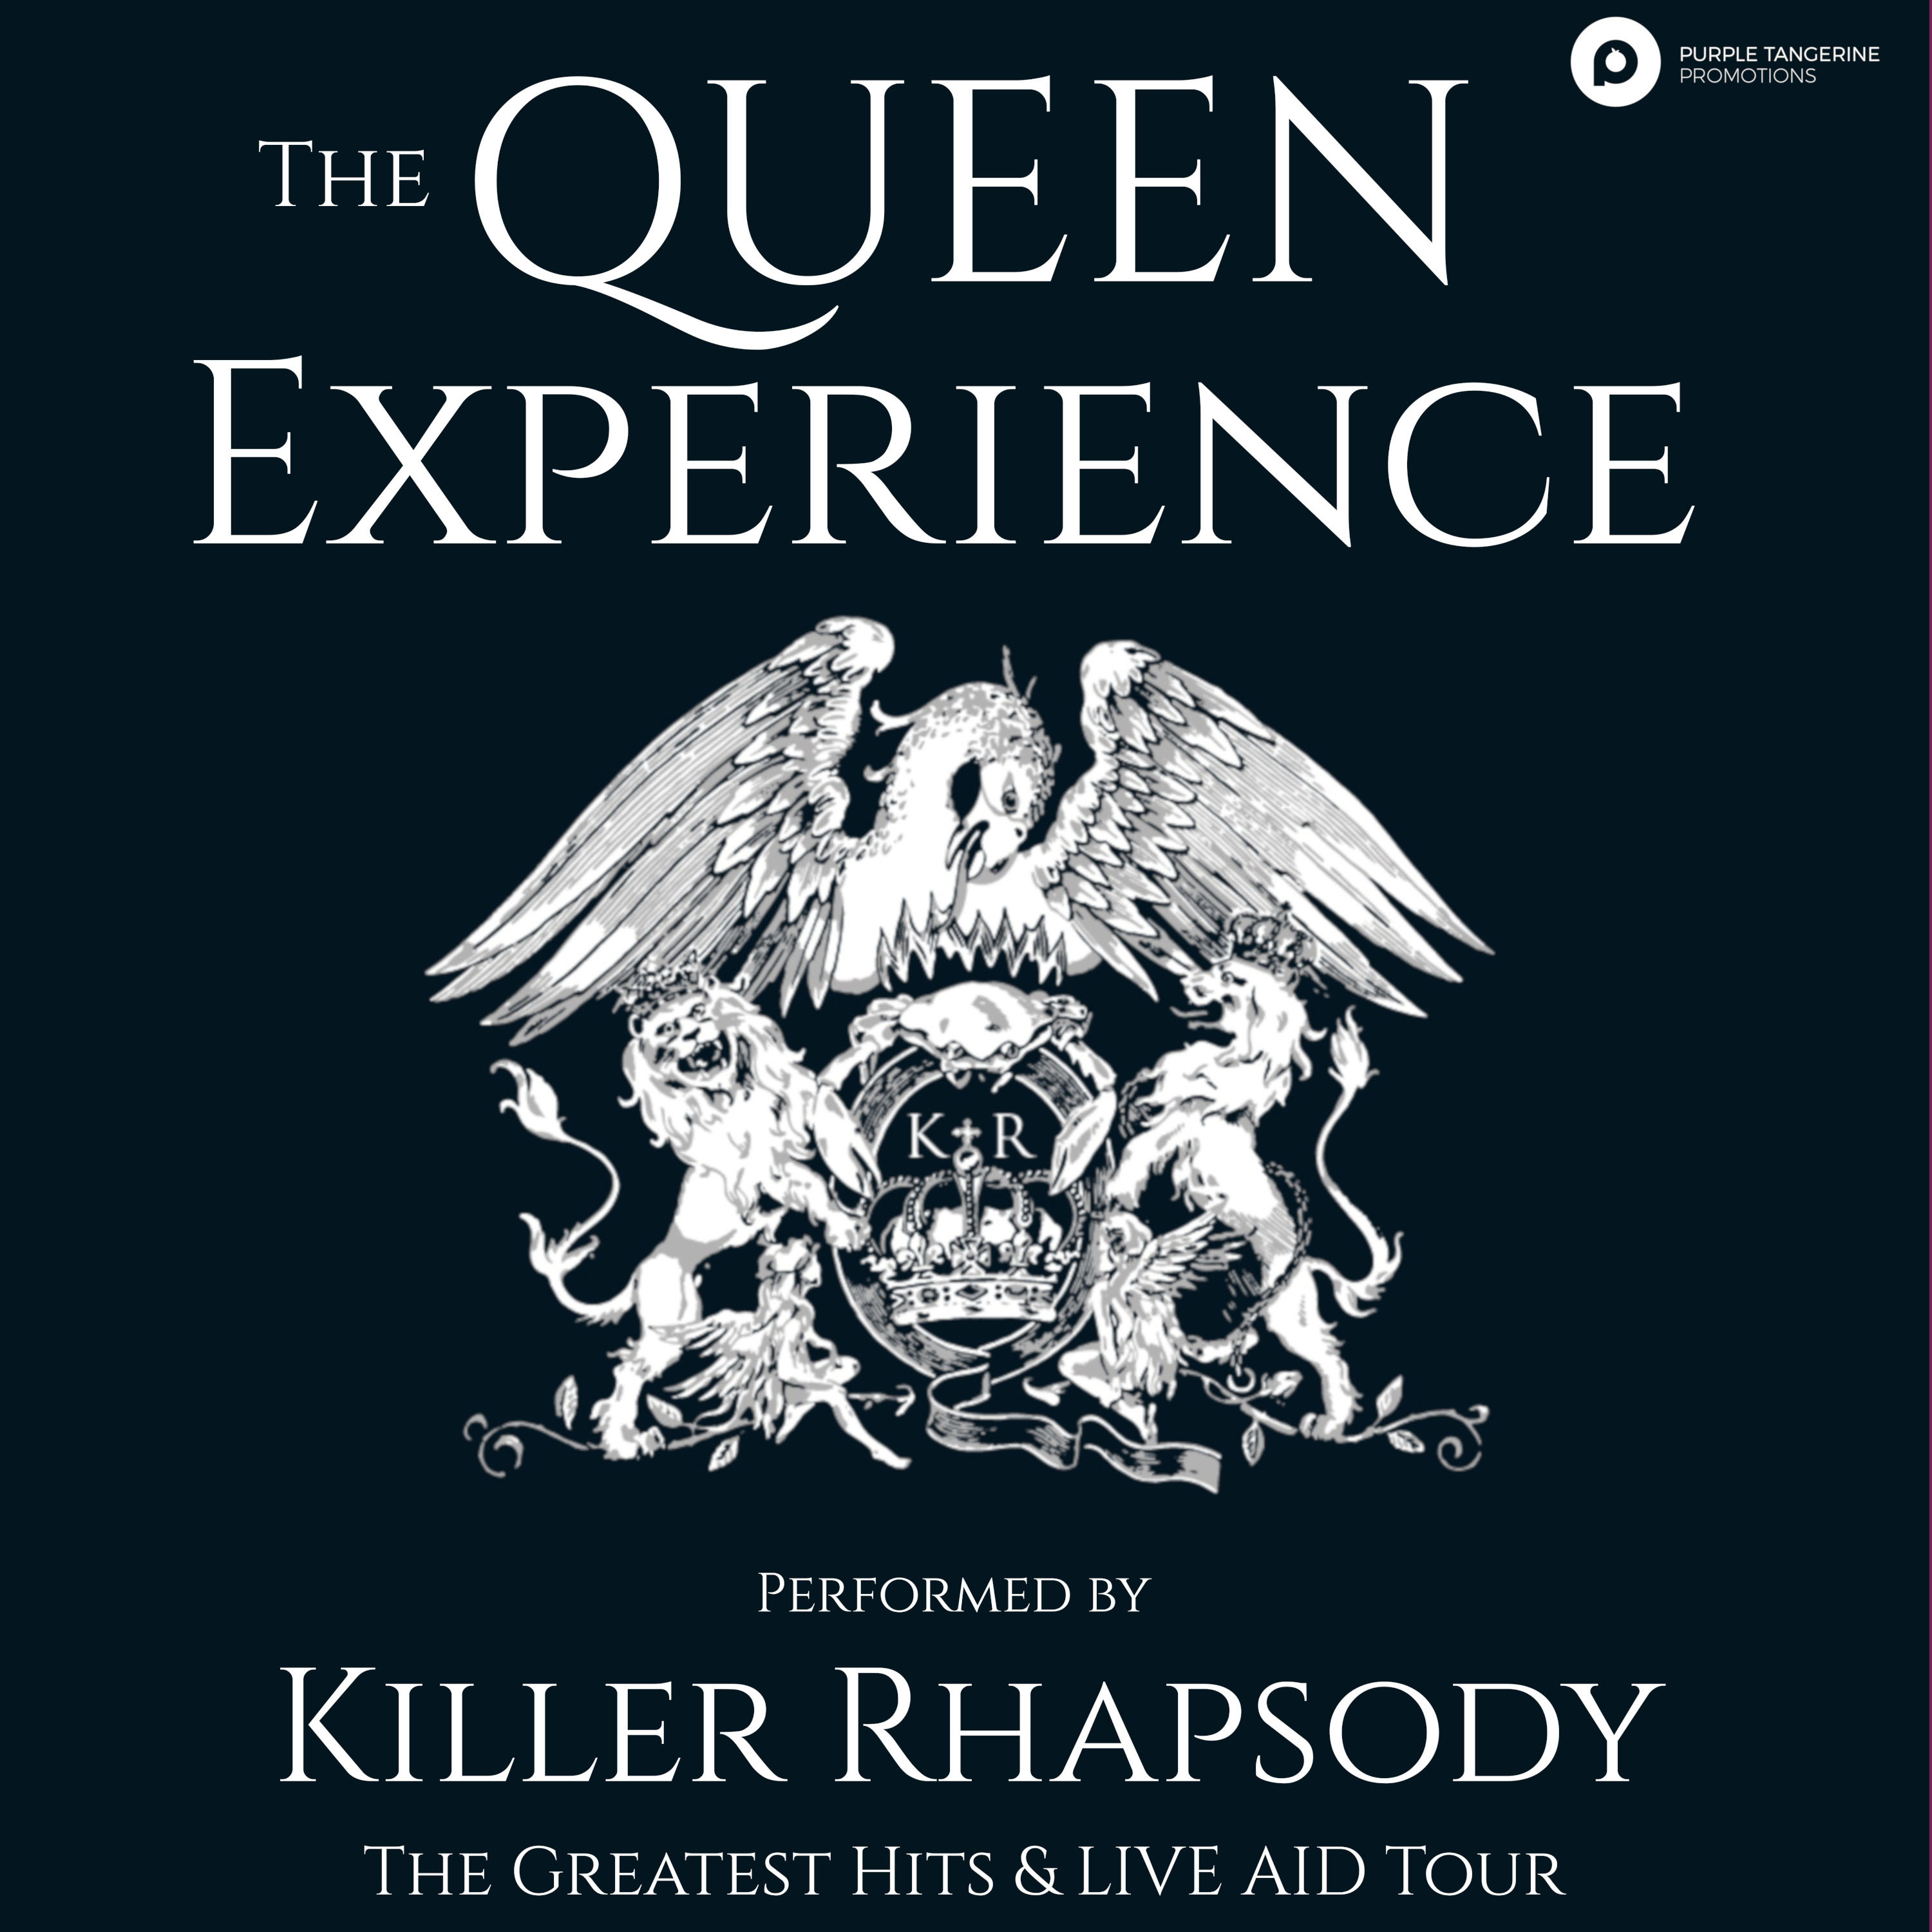 The QUEEN Experience - Killer Rhapsody banner image